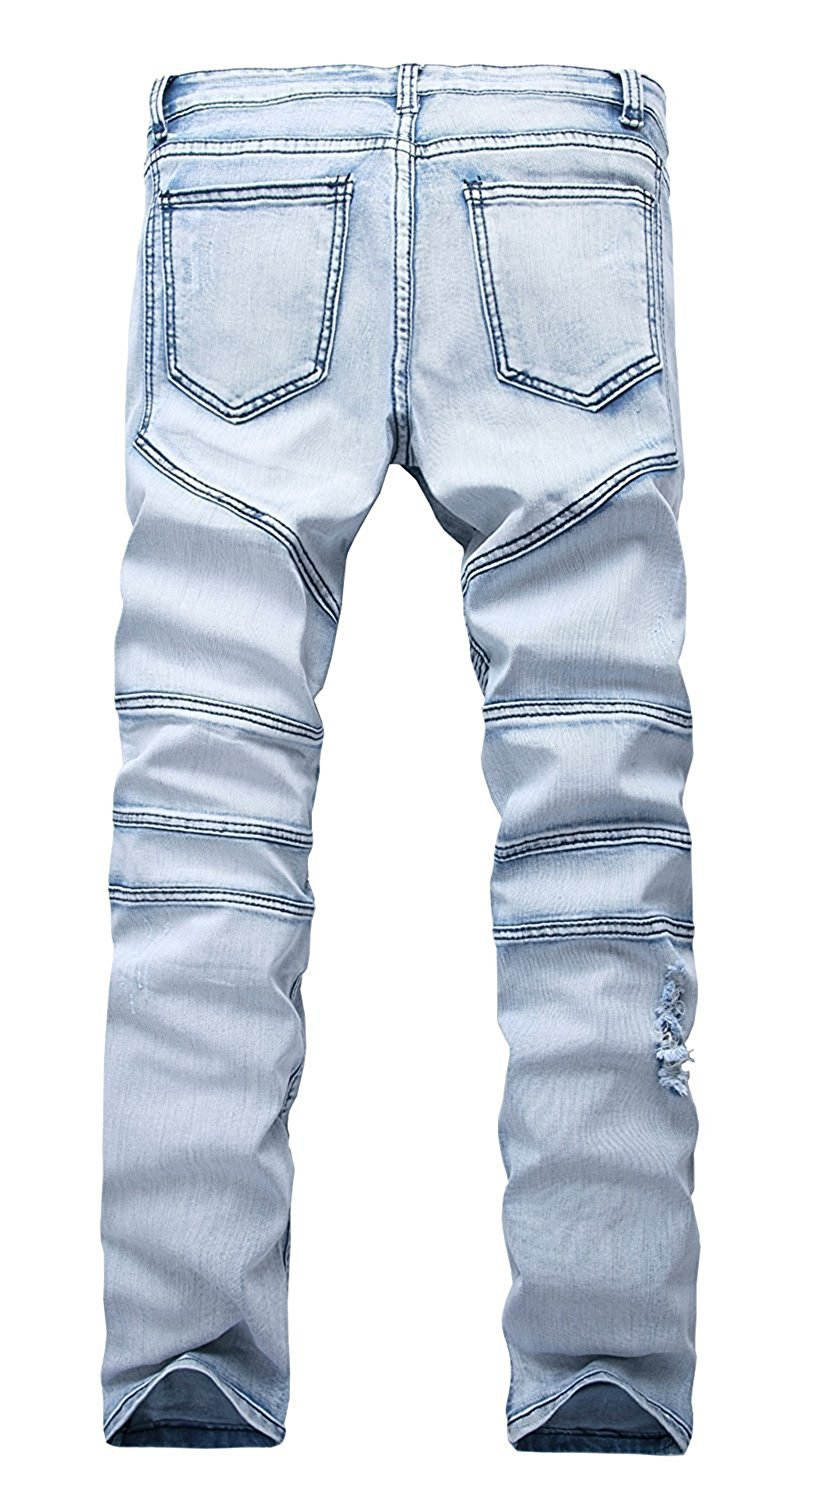 TOPING Fine Fashion;Handsome Men's Ripped Slim Straight Fit Biker Jeans With Zipper Deco 03 Light Blue40W x 32L